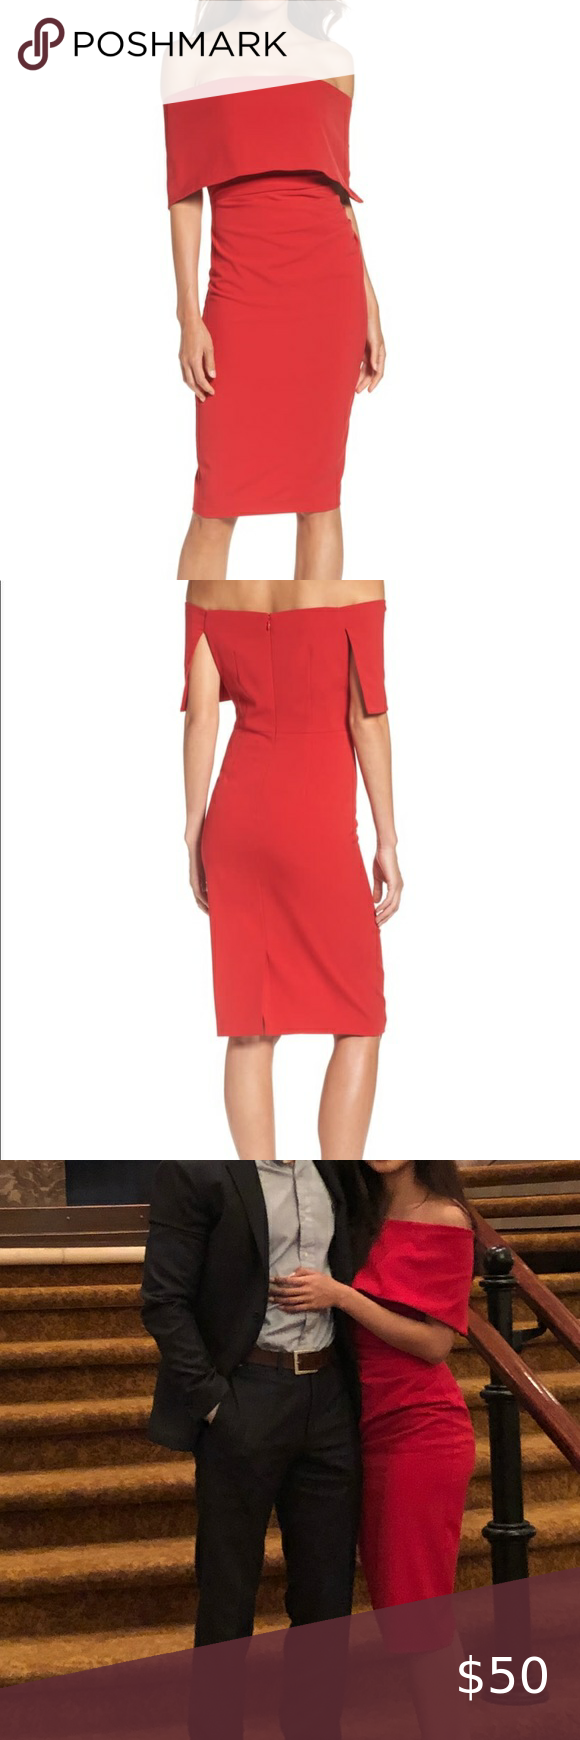 Vince Camuto Red Cocktail Dress Red Cocktail Dress Dresses Clothes Design [ 1740 x 580 Pixel ]